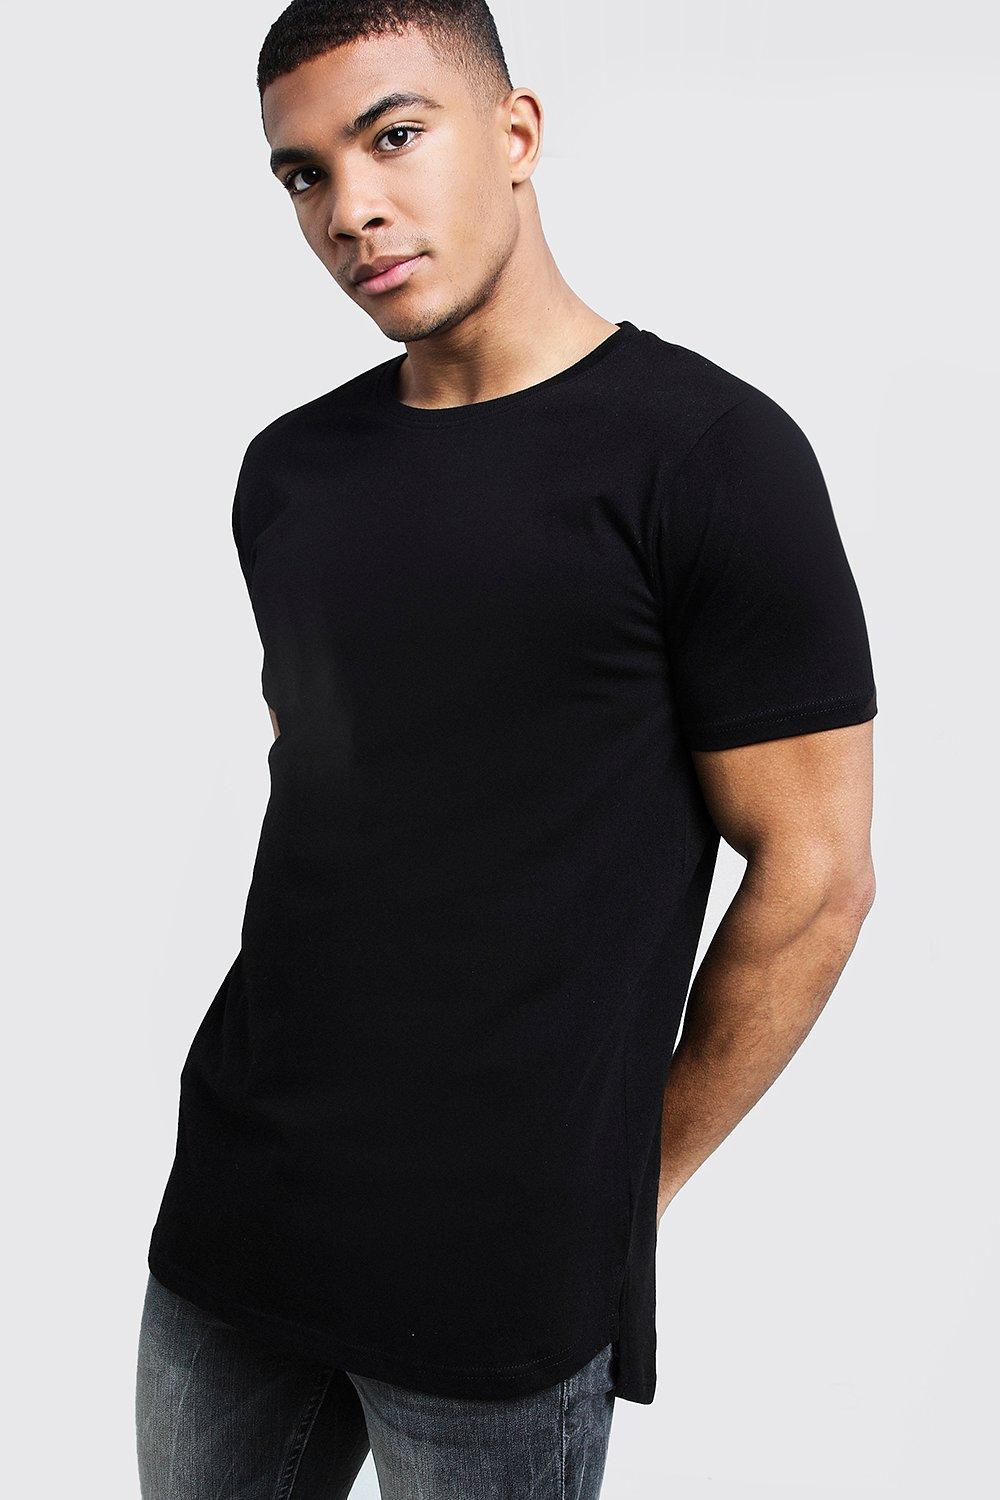 2c109806d8 Longline Stepped Curved Hem T-Shirt. Hover to zoom